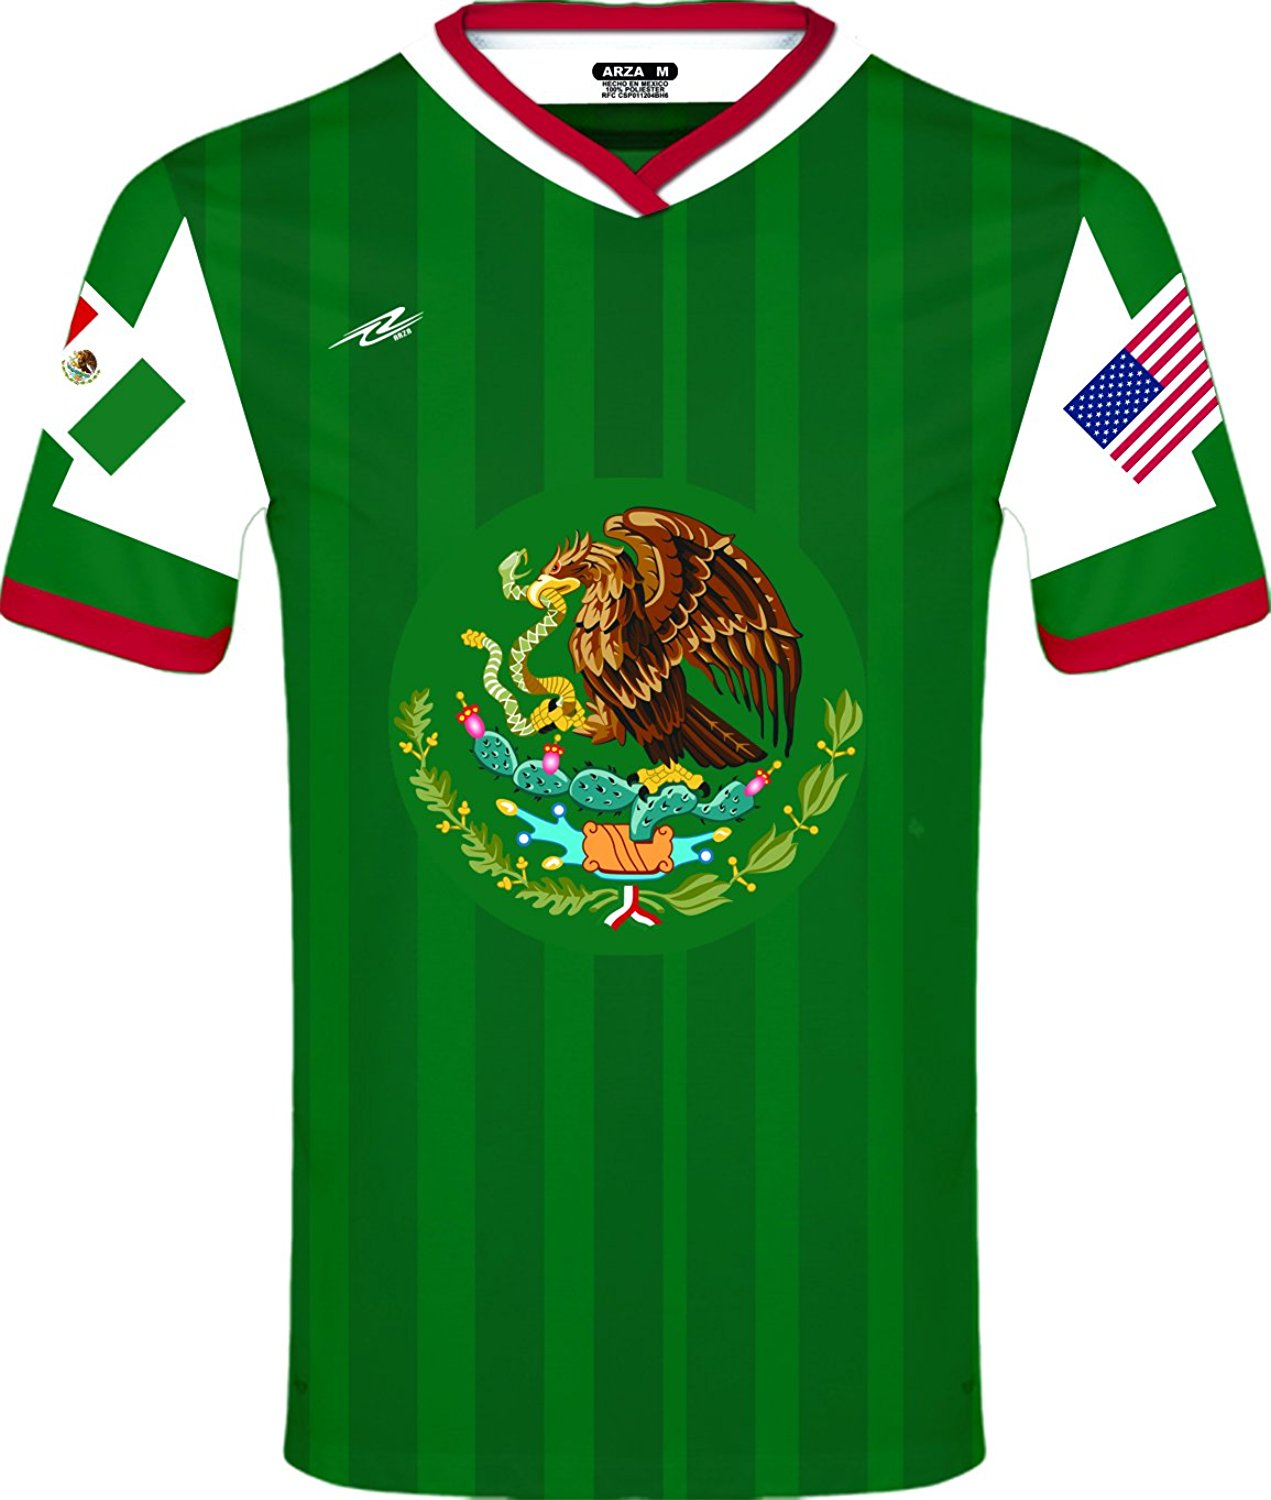 33beba08d Get Quotations · Arza Sports Men s Mexico and USA Jersey